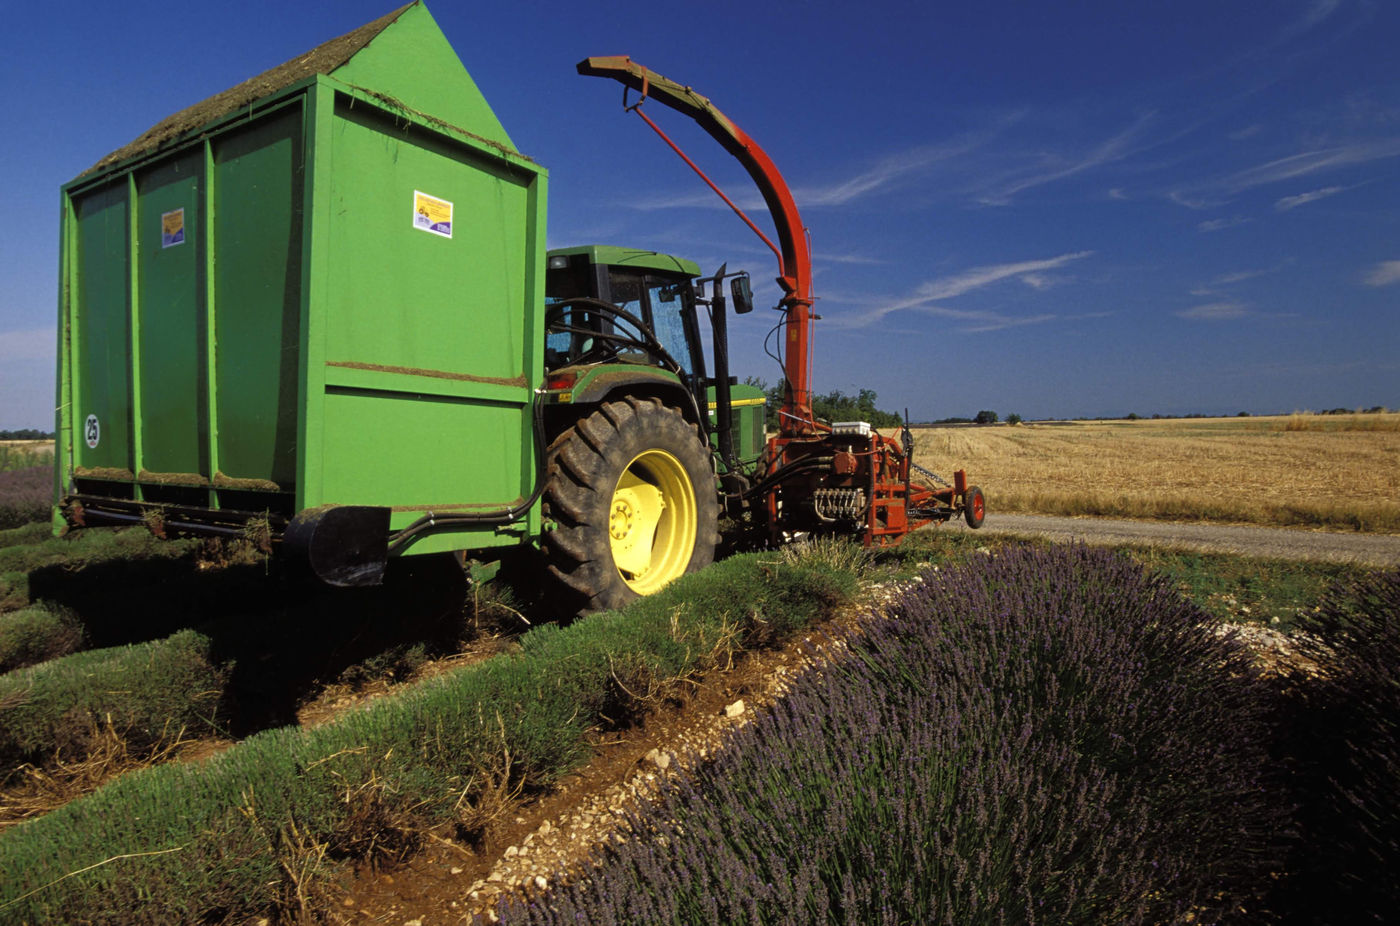 Lavender Flower Harvesting by Machine